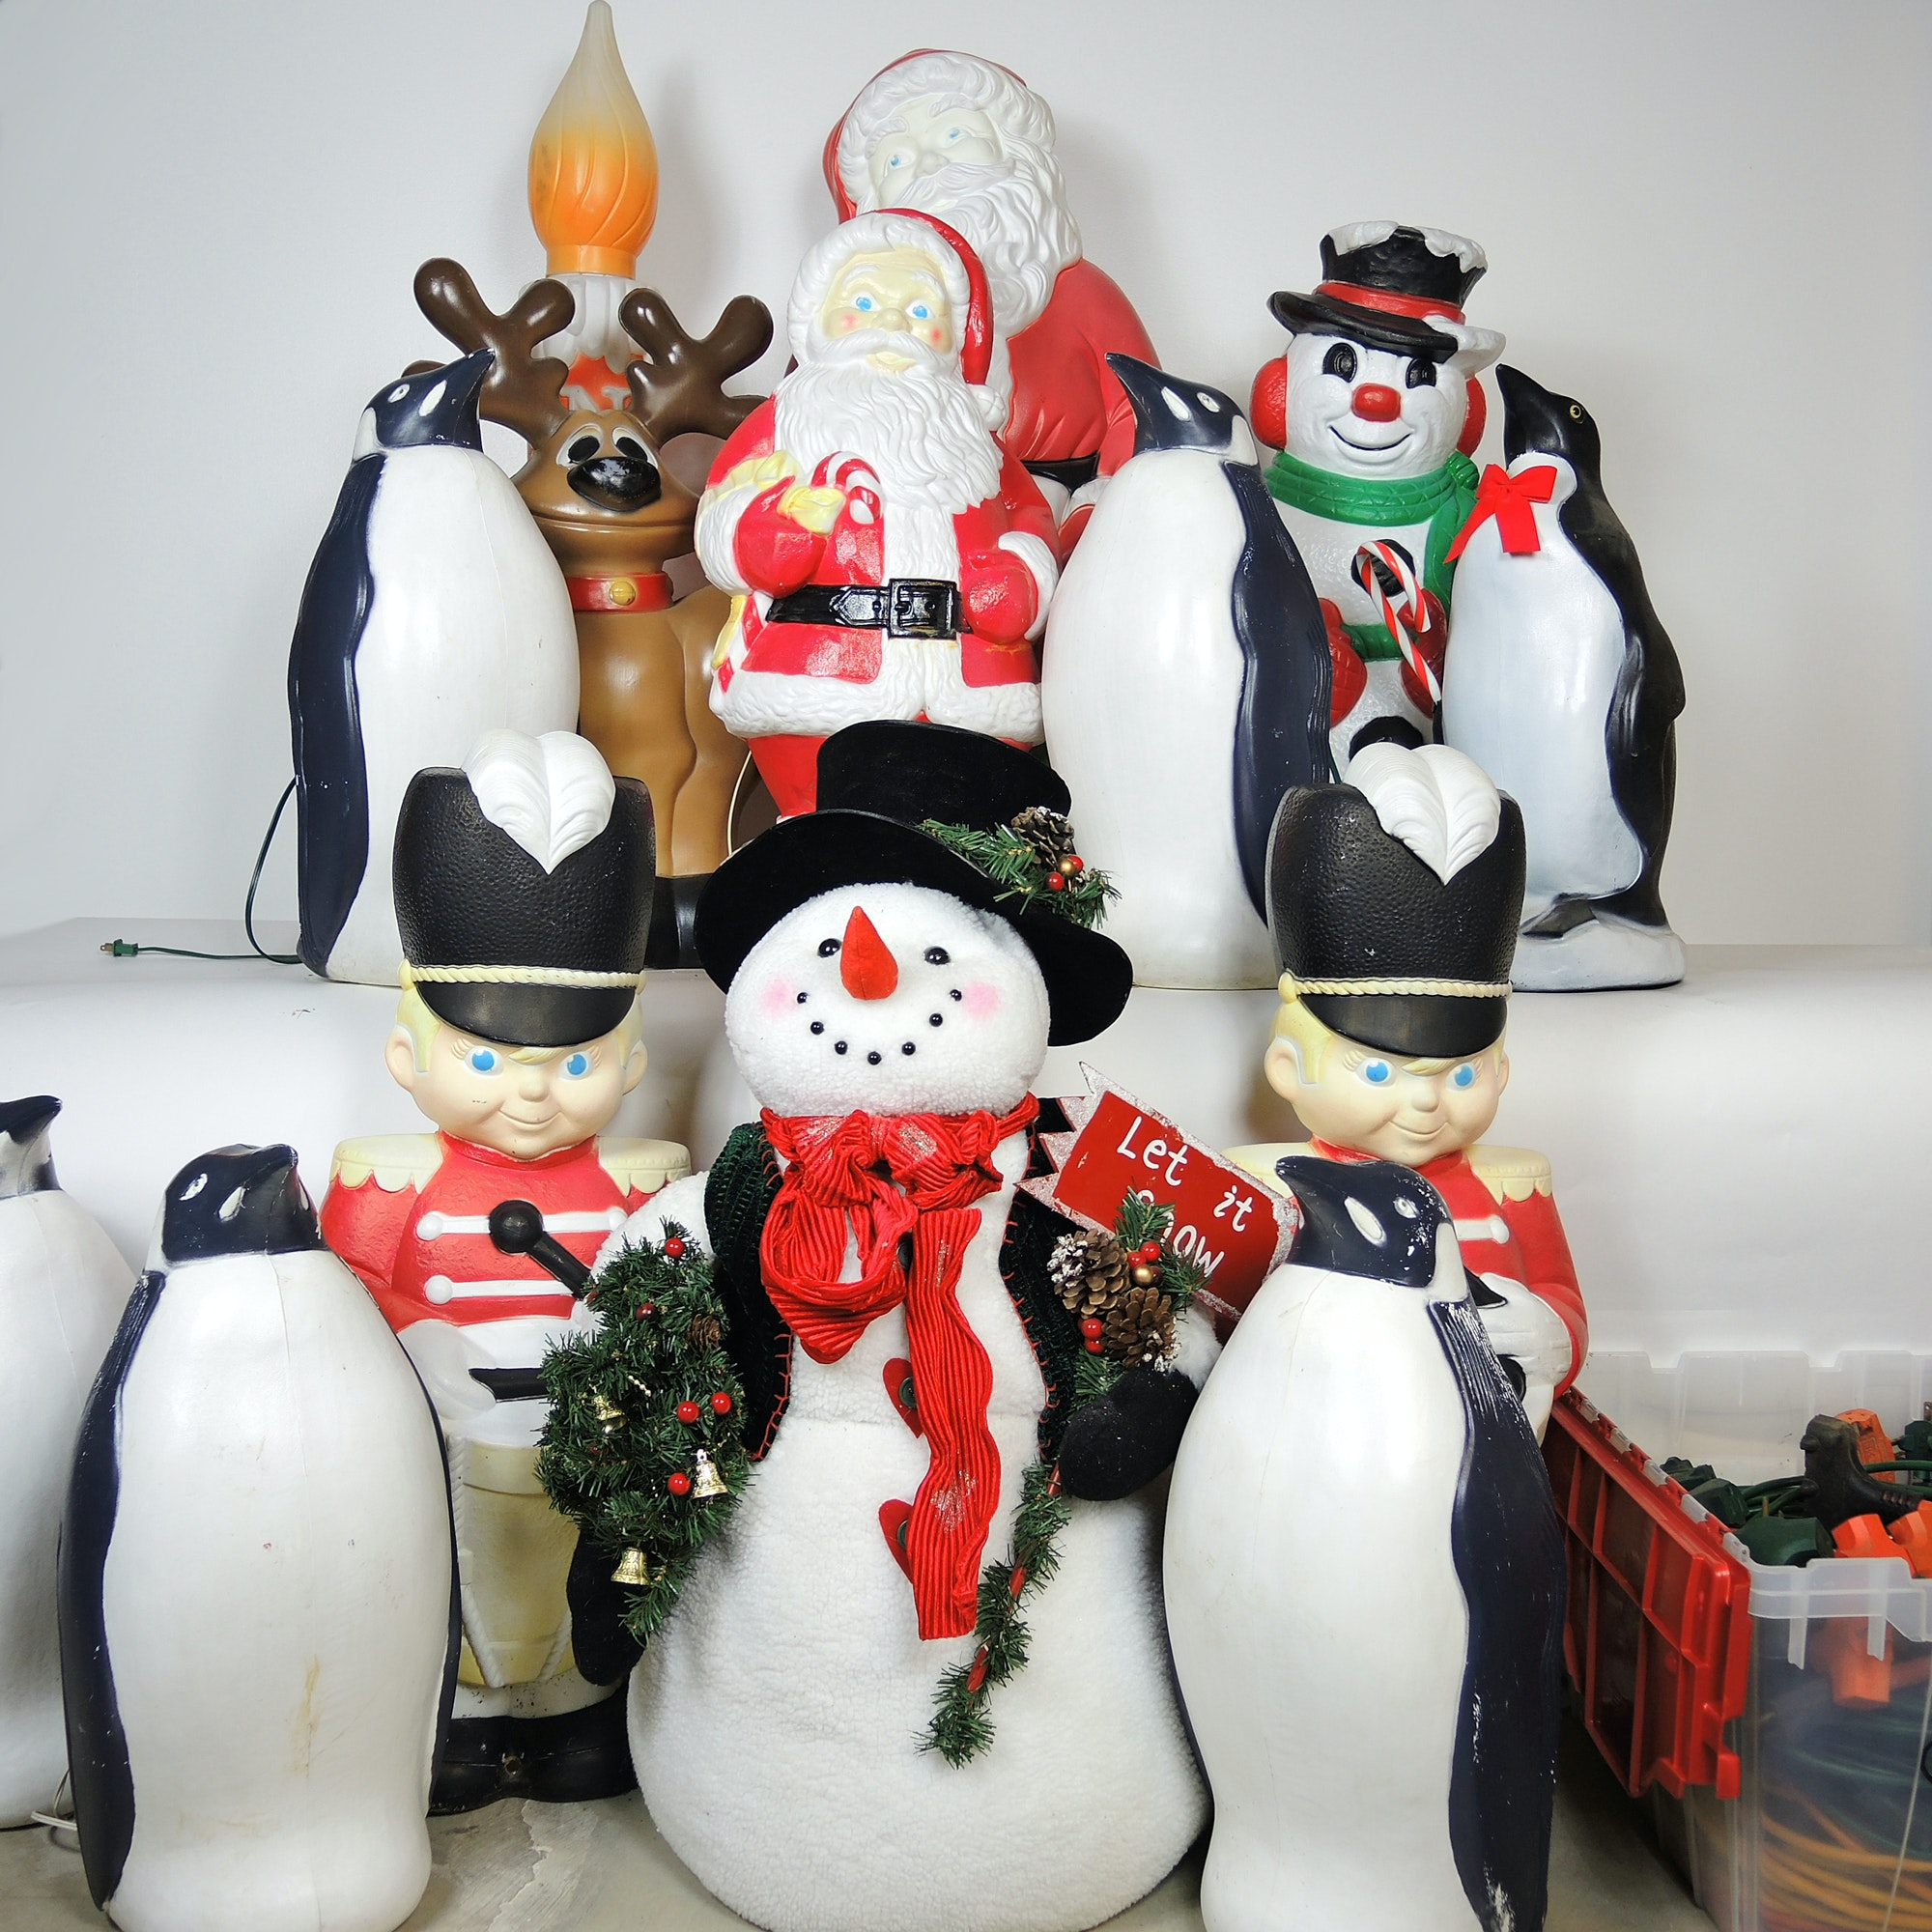 Vintage and Newer Christmas Blowmold Pre-Lit Lawn Ornaments